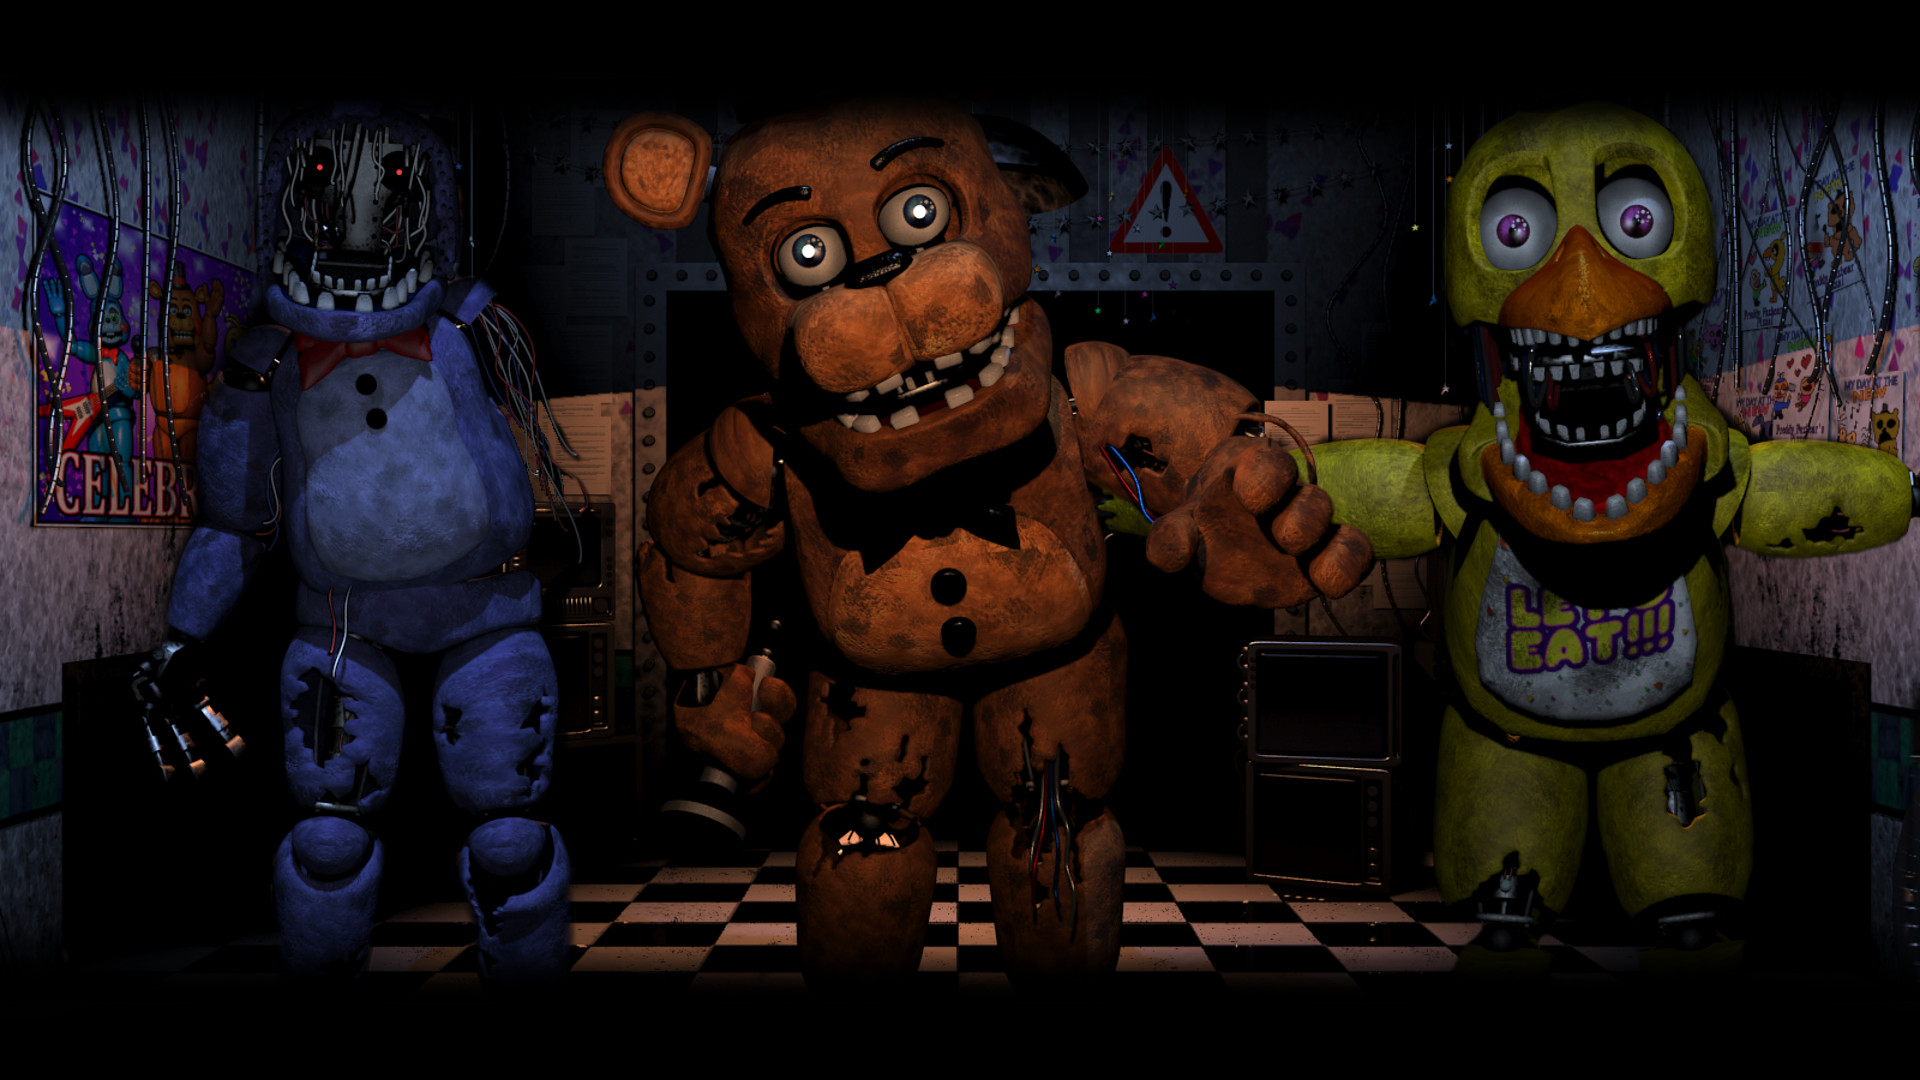 … Old Gang ( Five Nights At Freddy's 2 Wallpaper) by BloodyHorrible